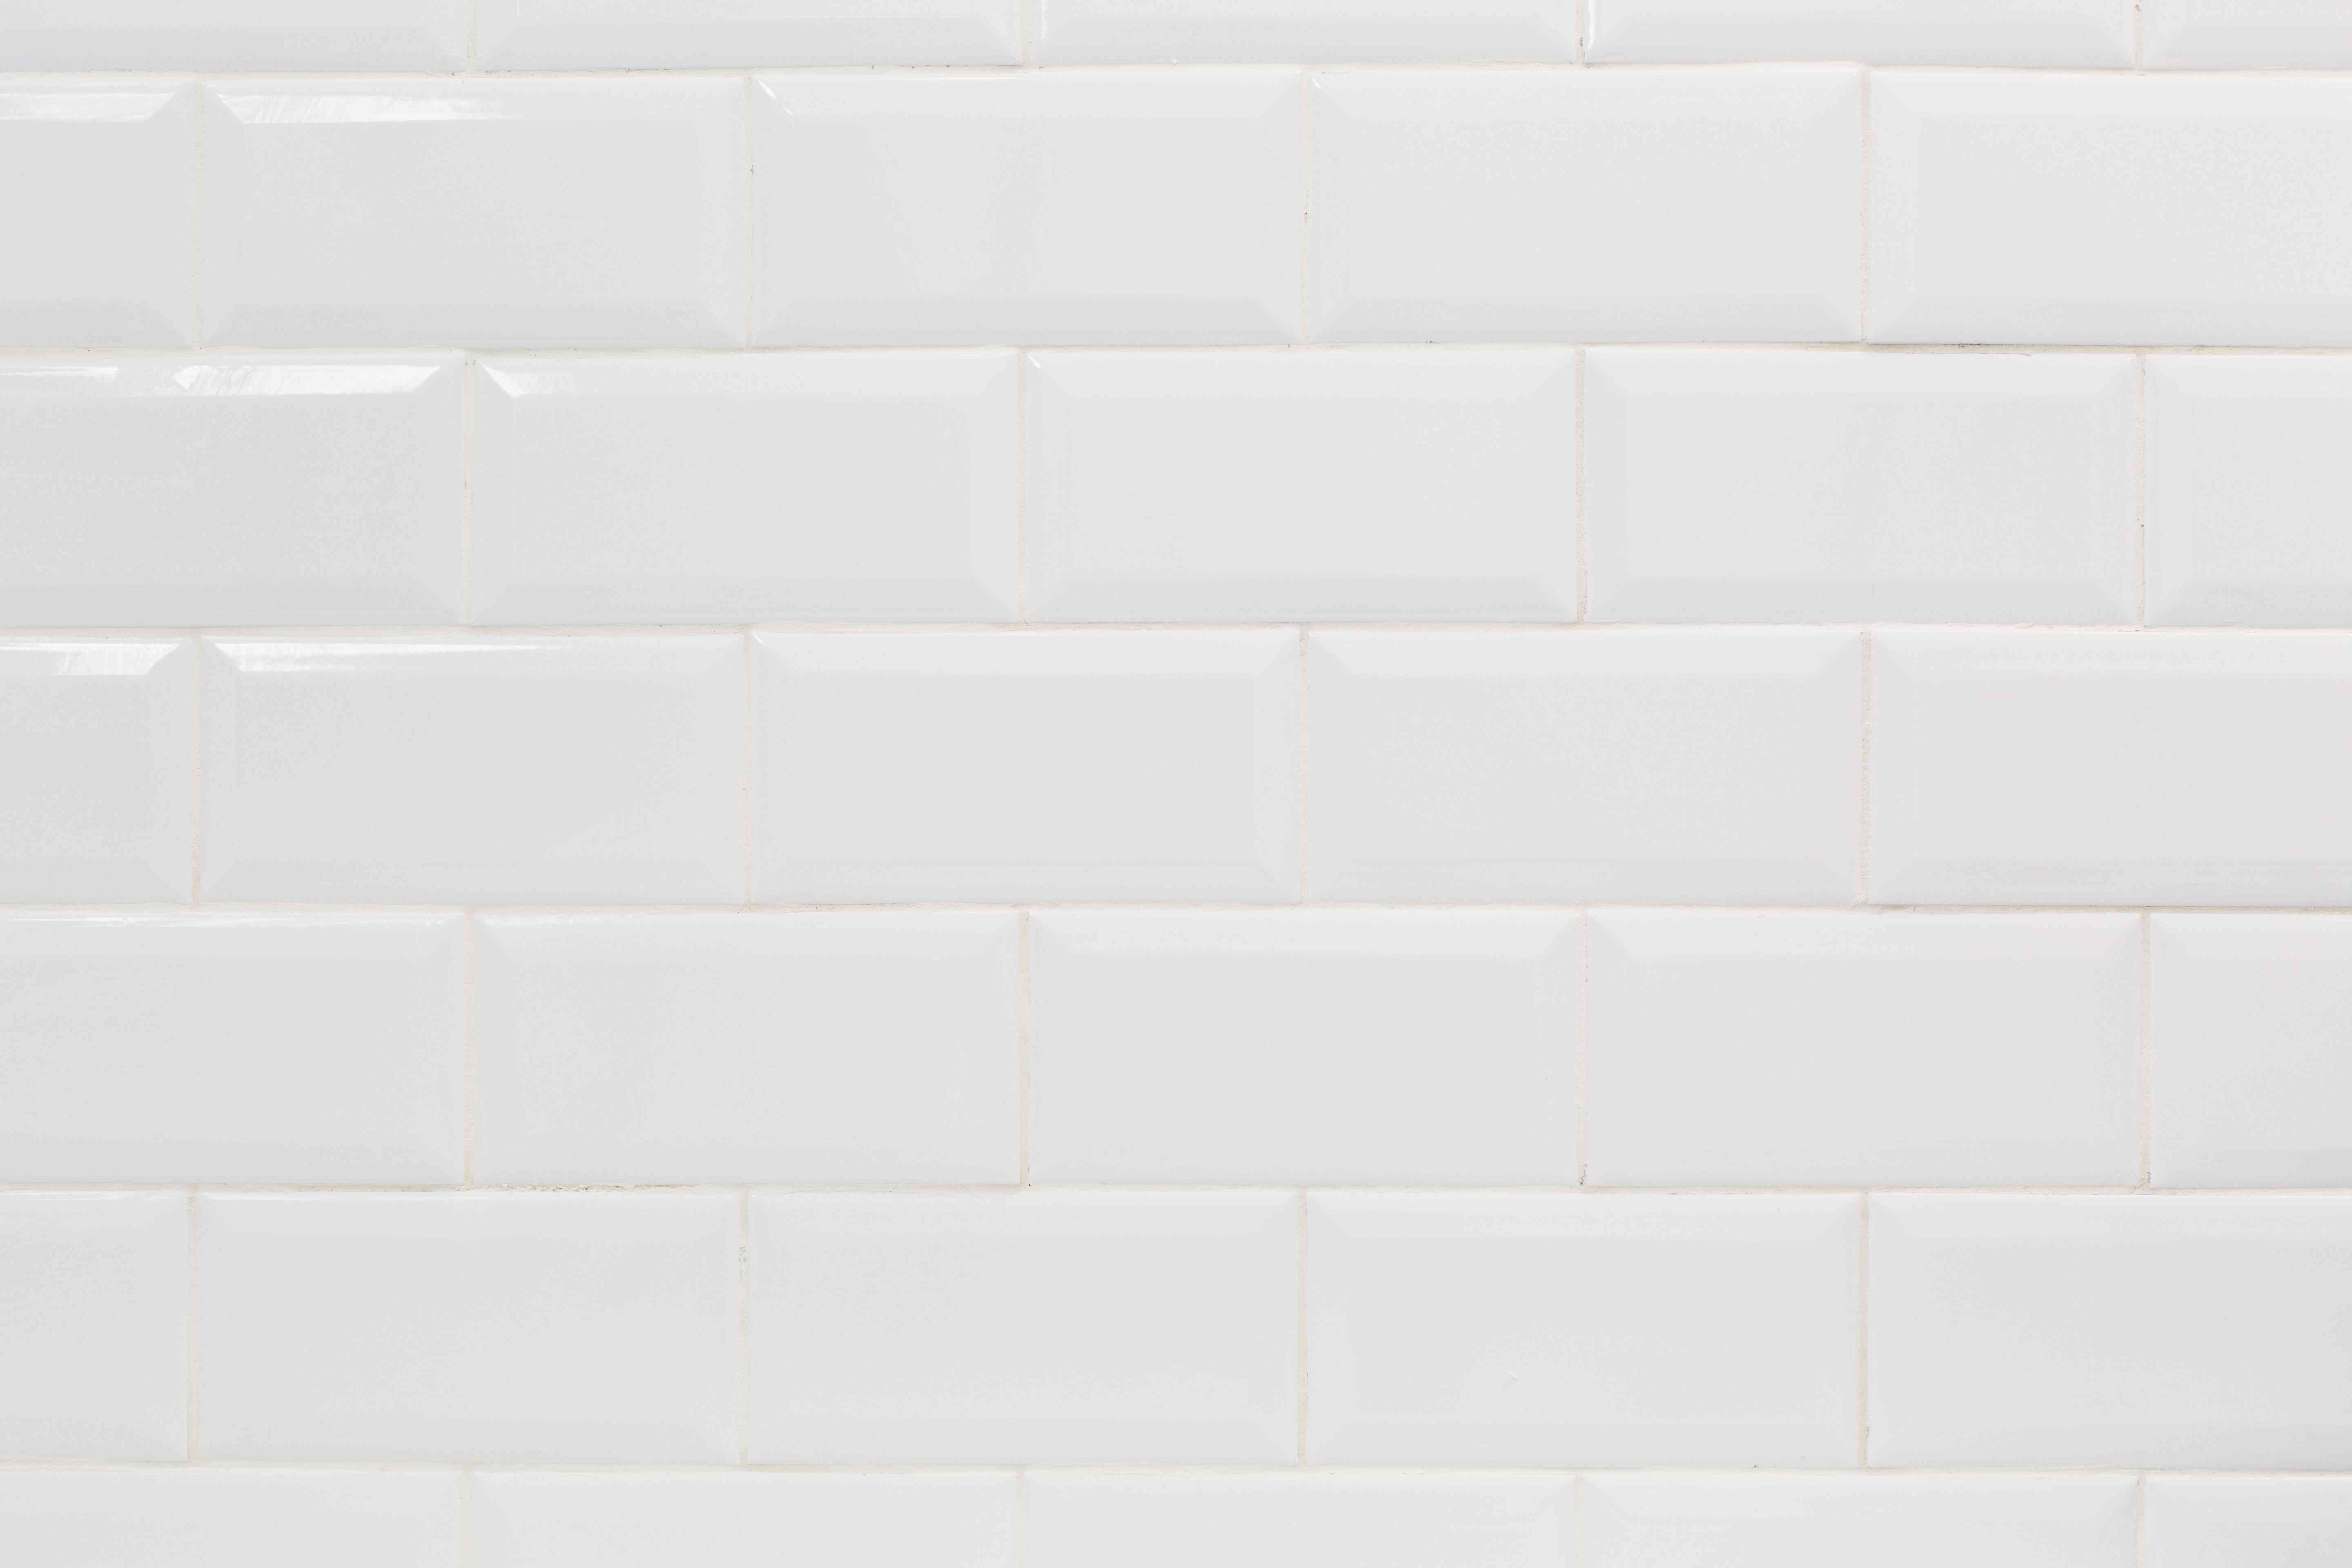 White ceramic wall tile buffed and completed